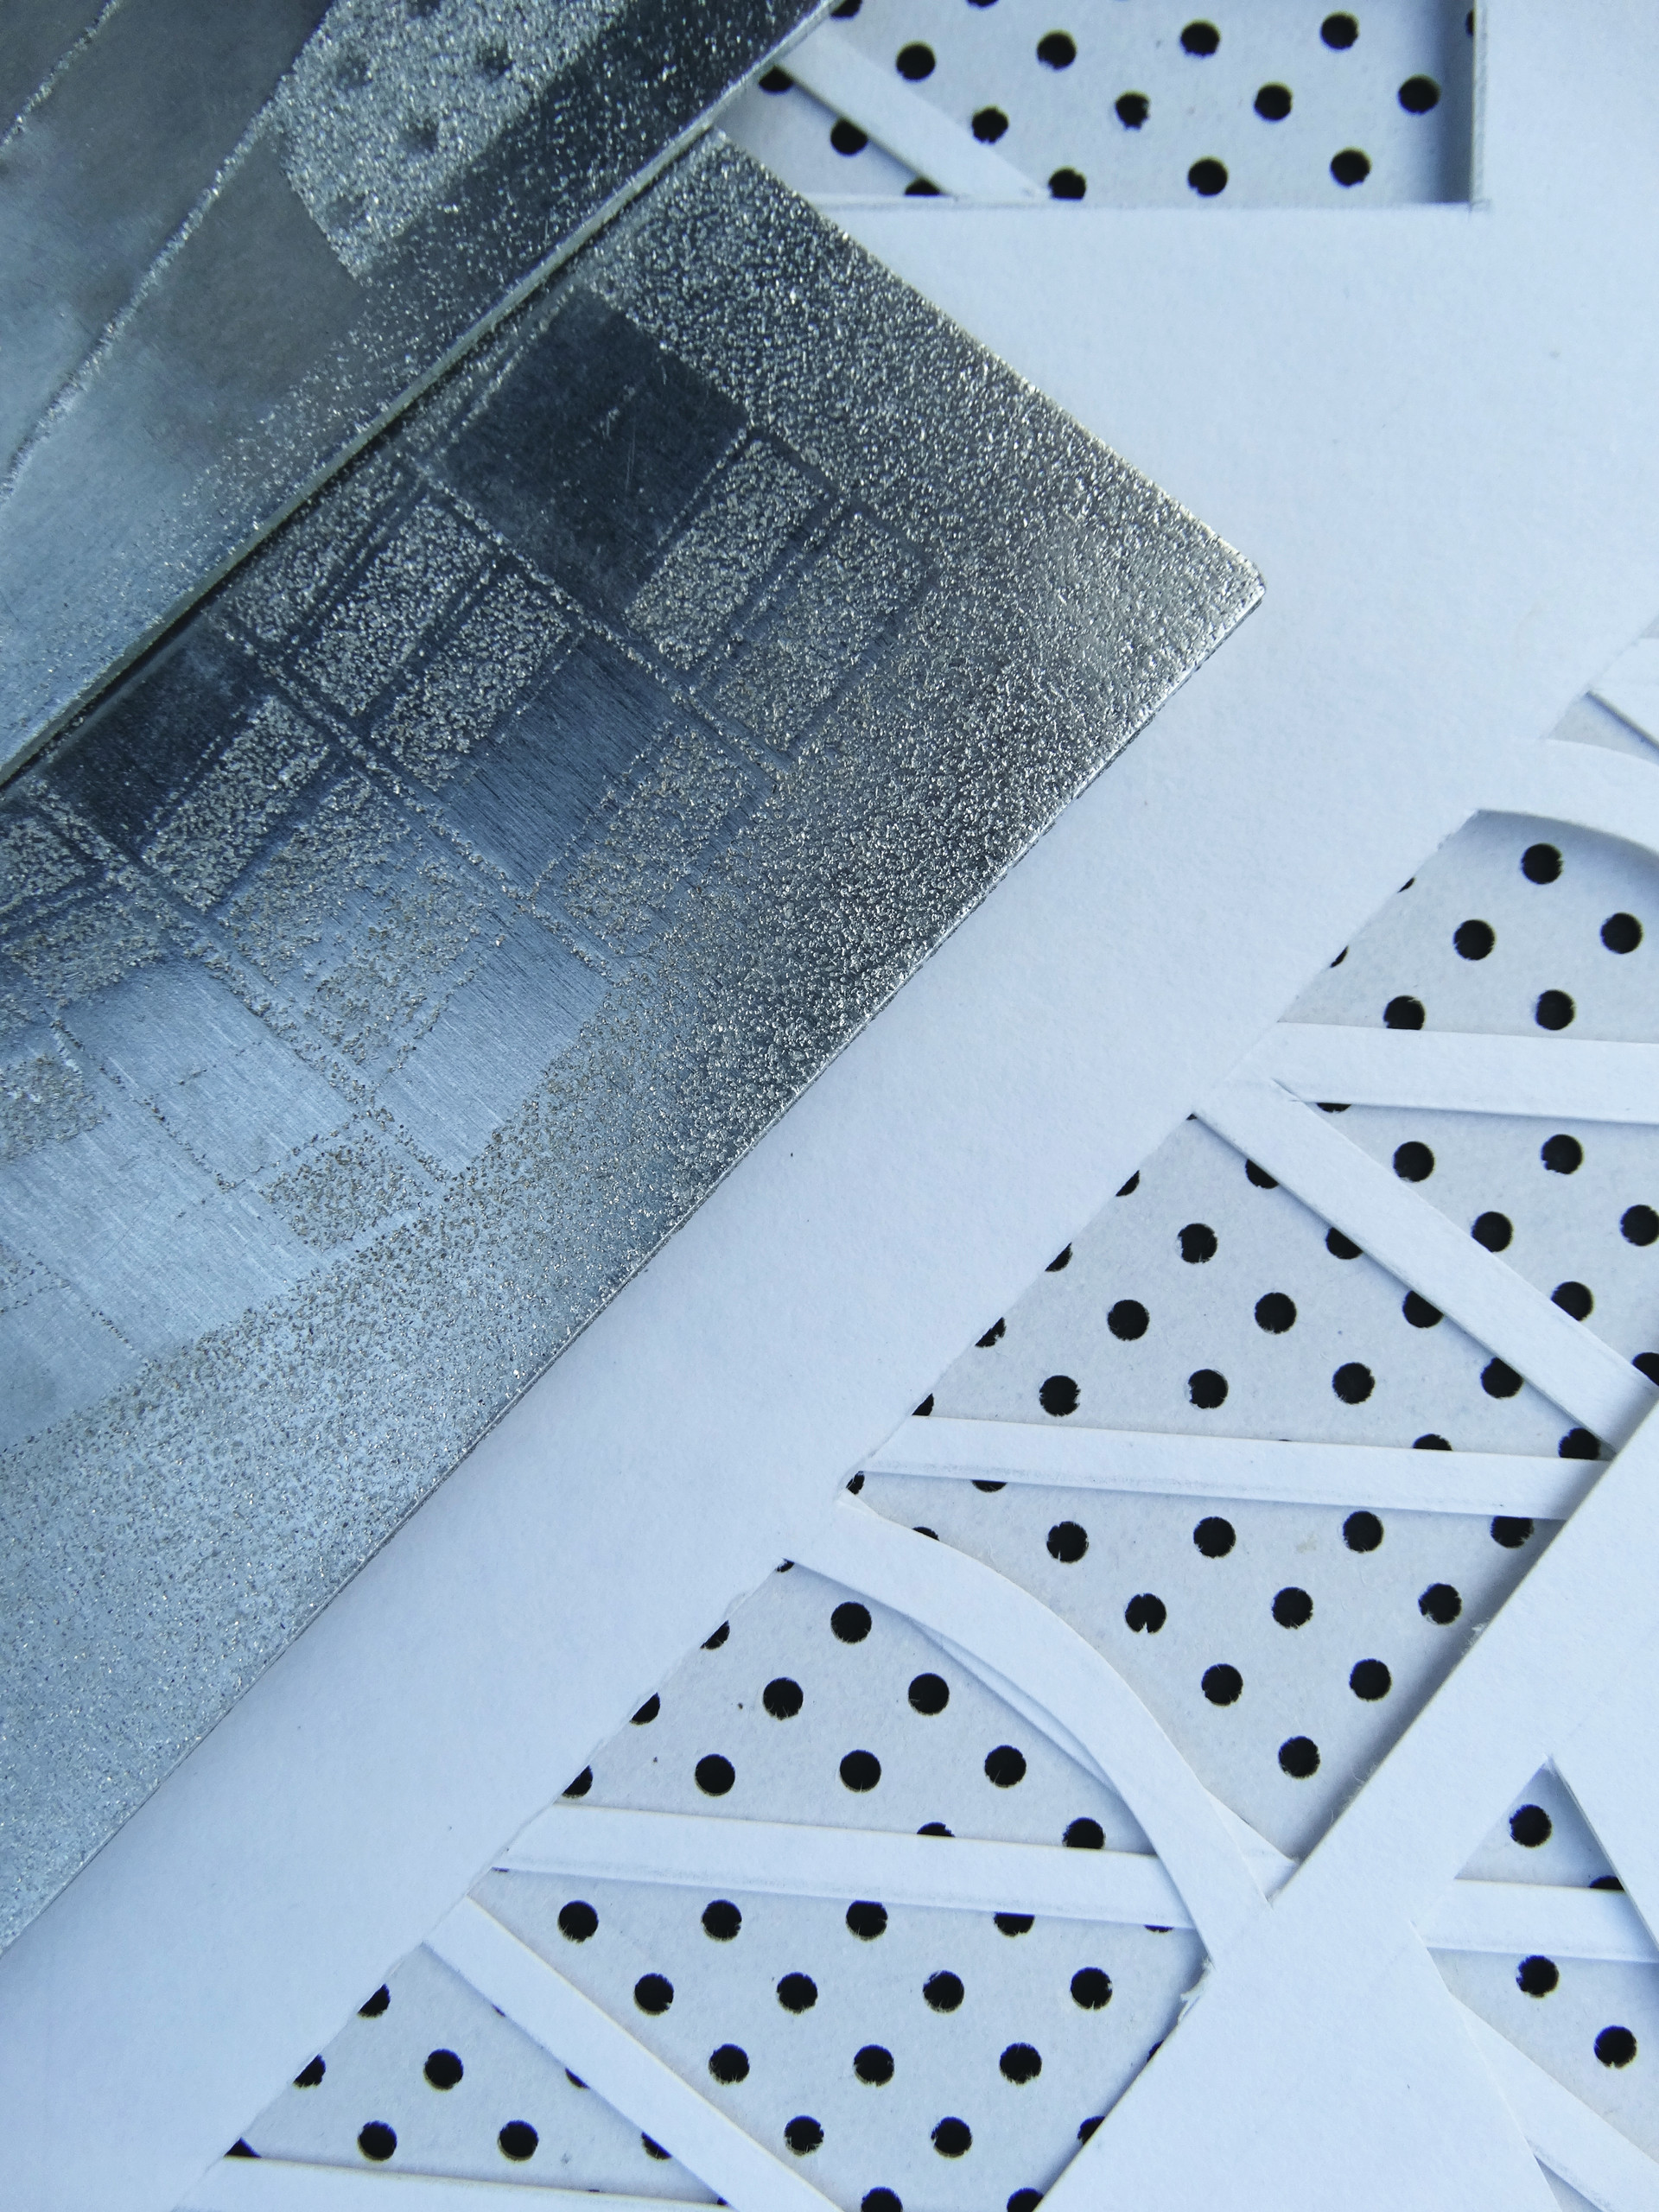 textured-effect metal surface with geometric pattern inspired by details of London's iconic Barbican